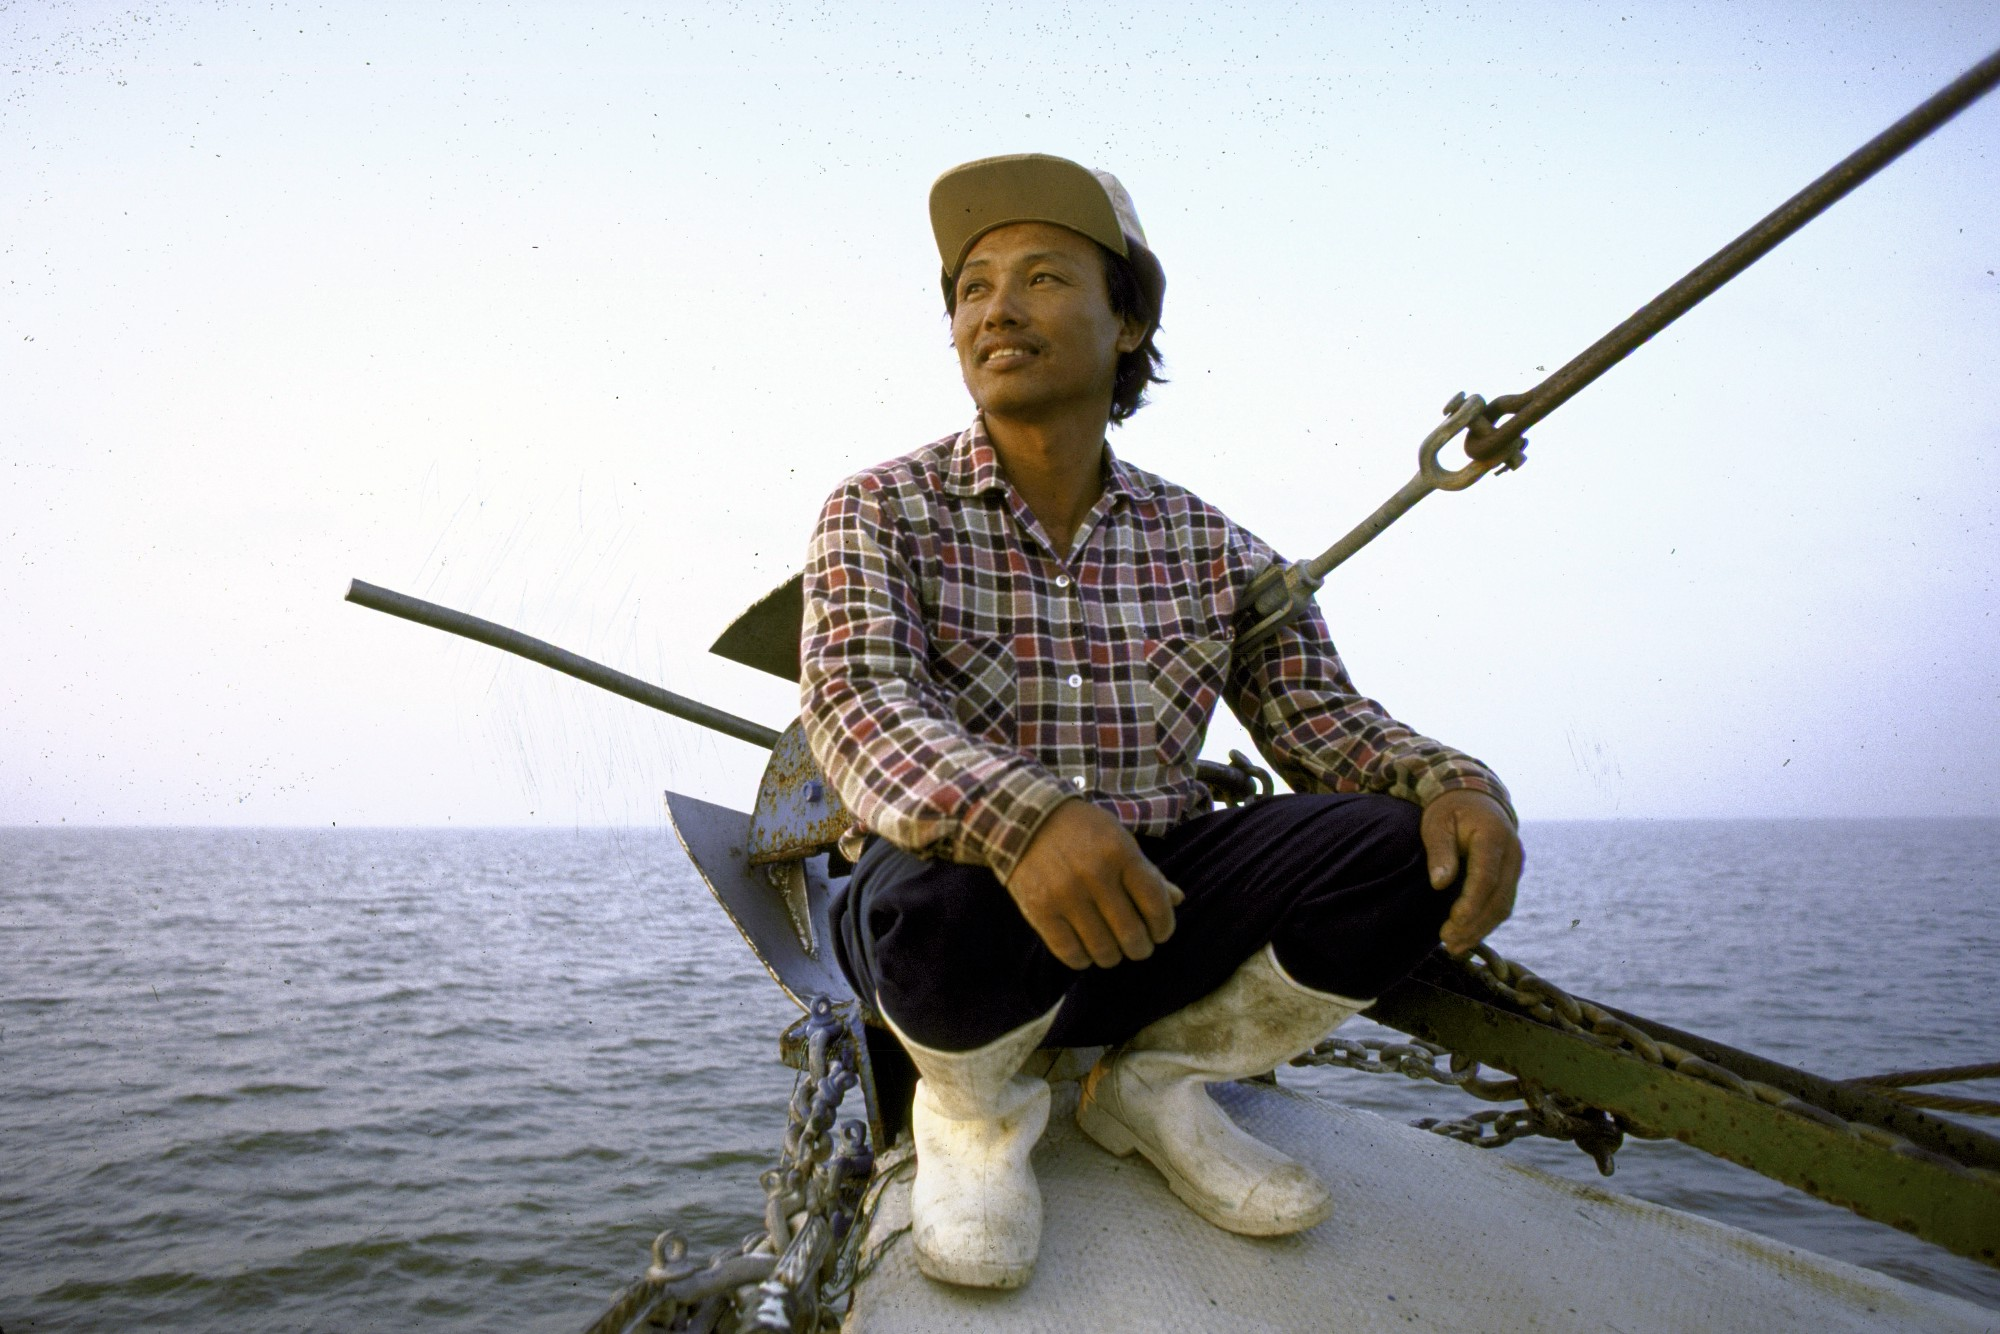 the war between vietnamese fishermen and the kkk signaled a new type